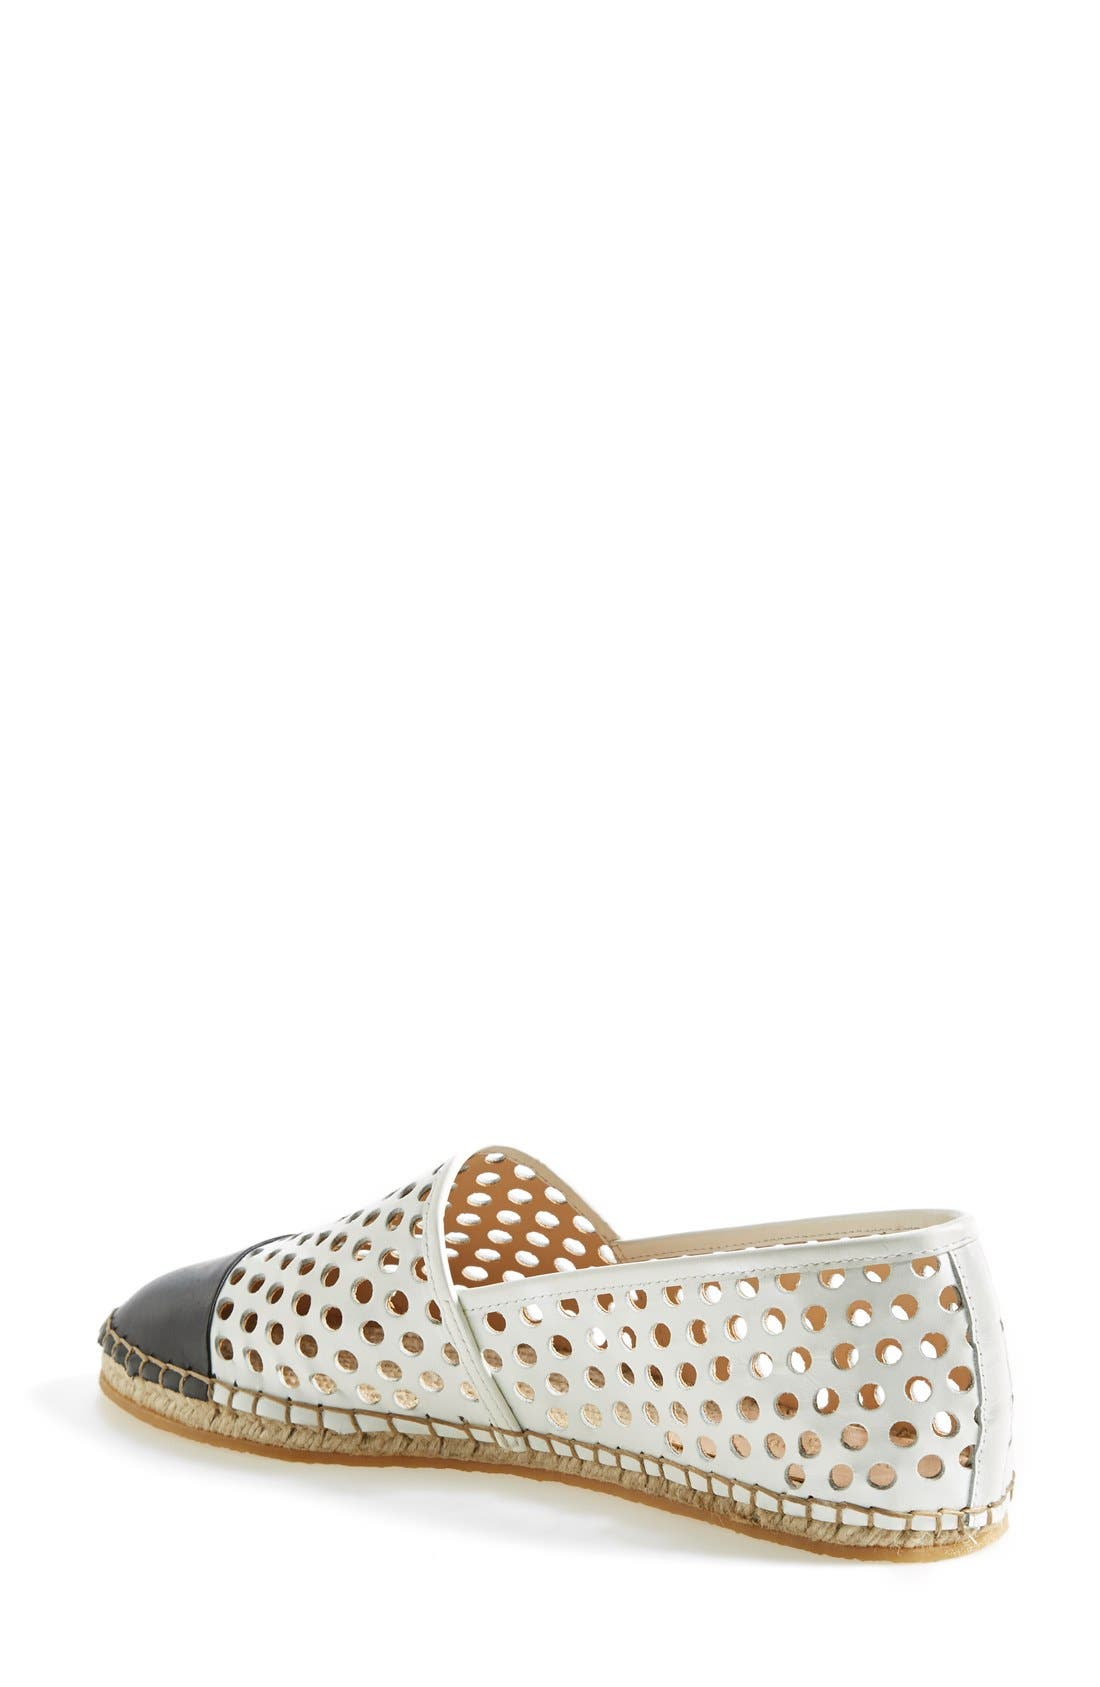 'Mara' Espadrille Flat,                             Alternate thumbnail 2, color,                             White/ Black